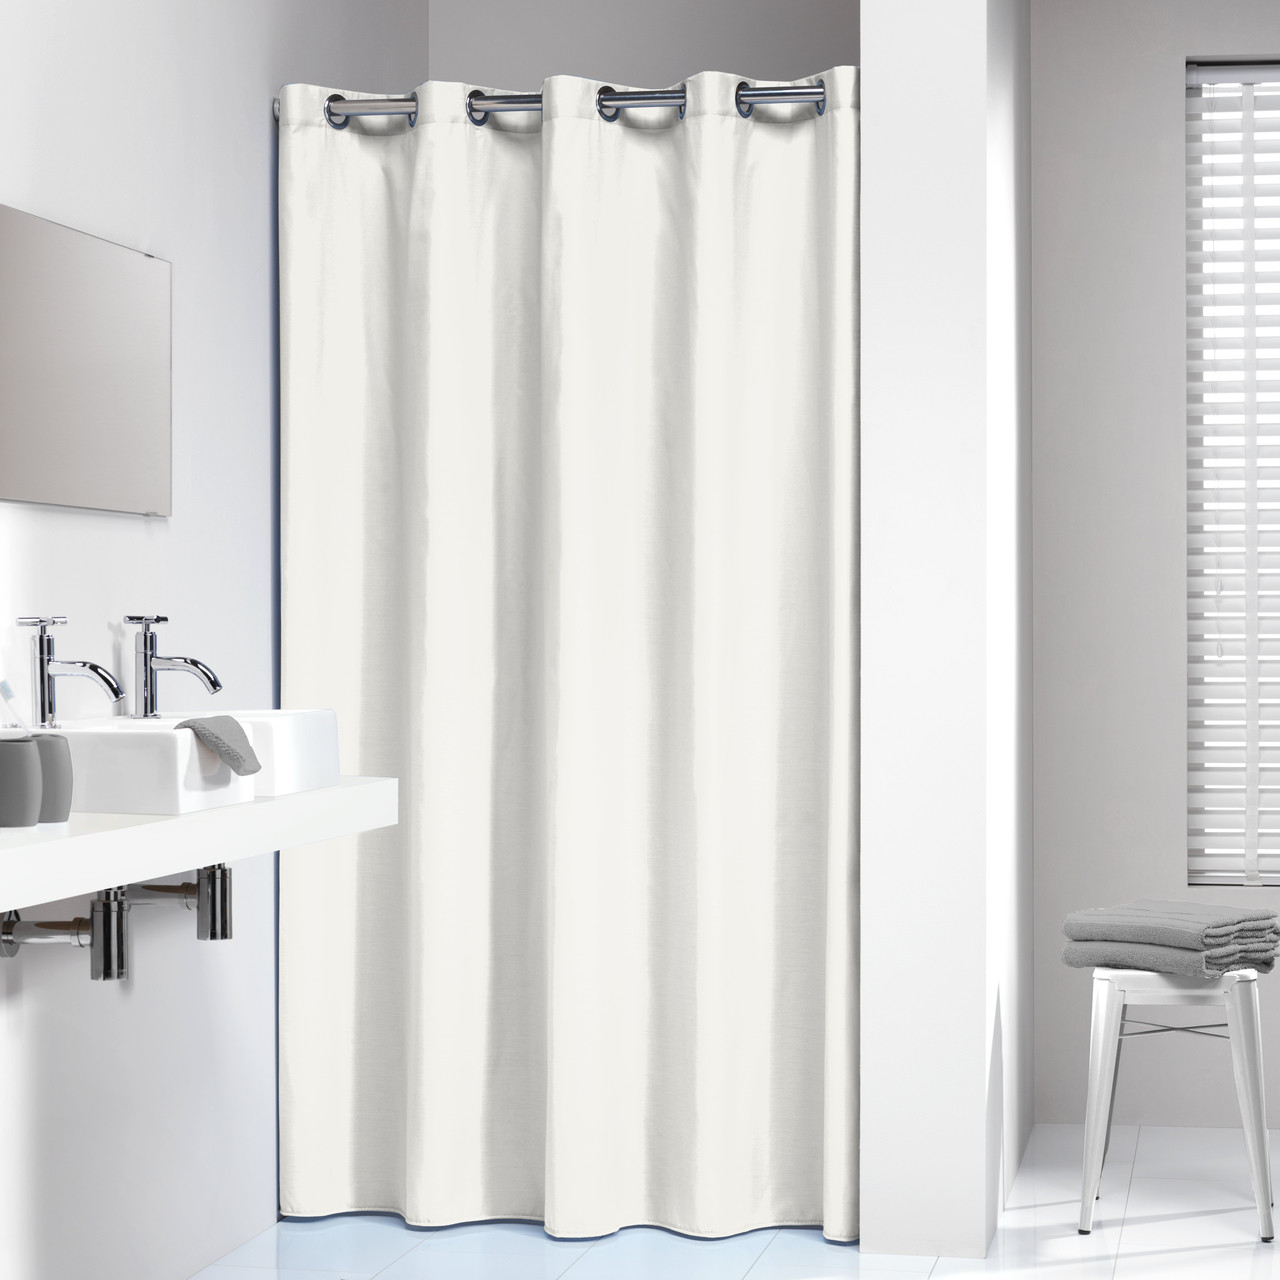 extra long hookless shower curtain 72 x 78 inch sealskin coloris off white cotton